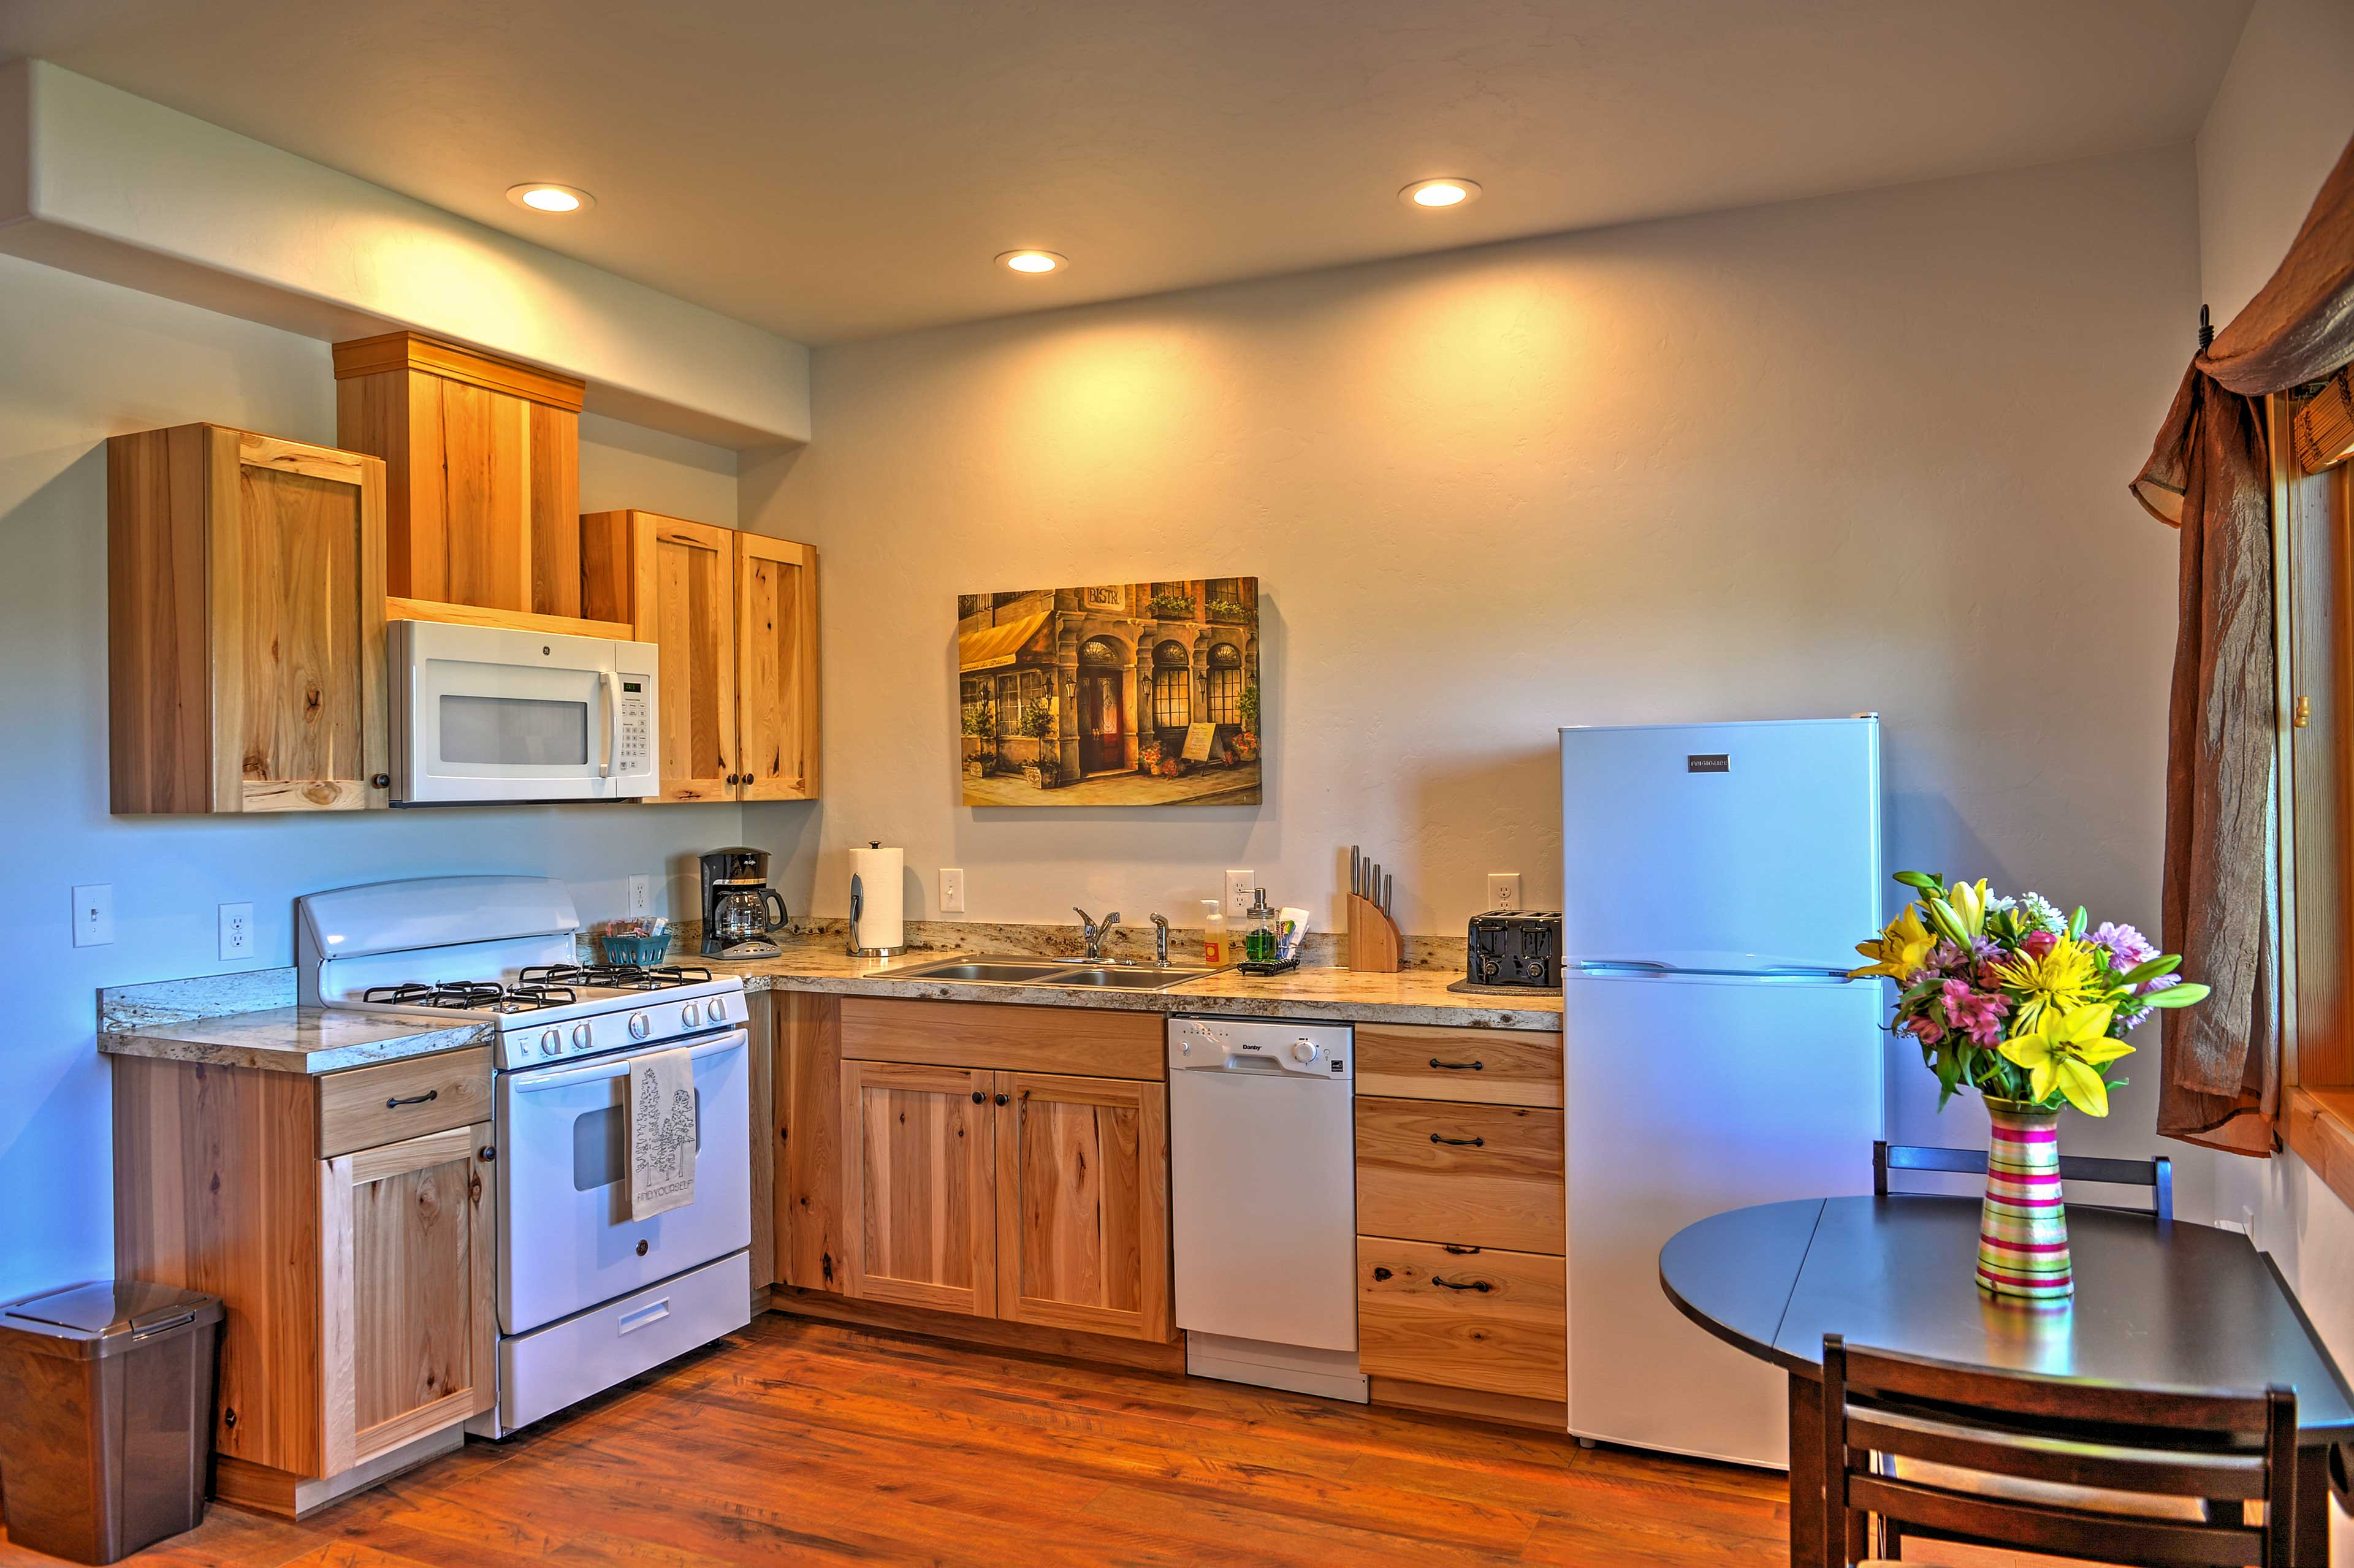 Sleek hardwood floors guide you through the fully equipped kitchen.